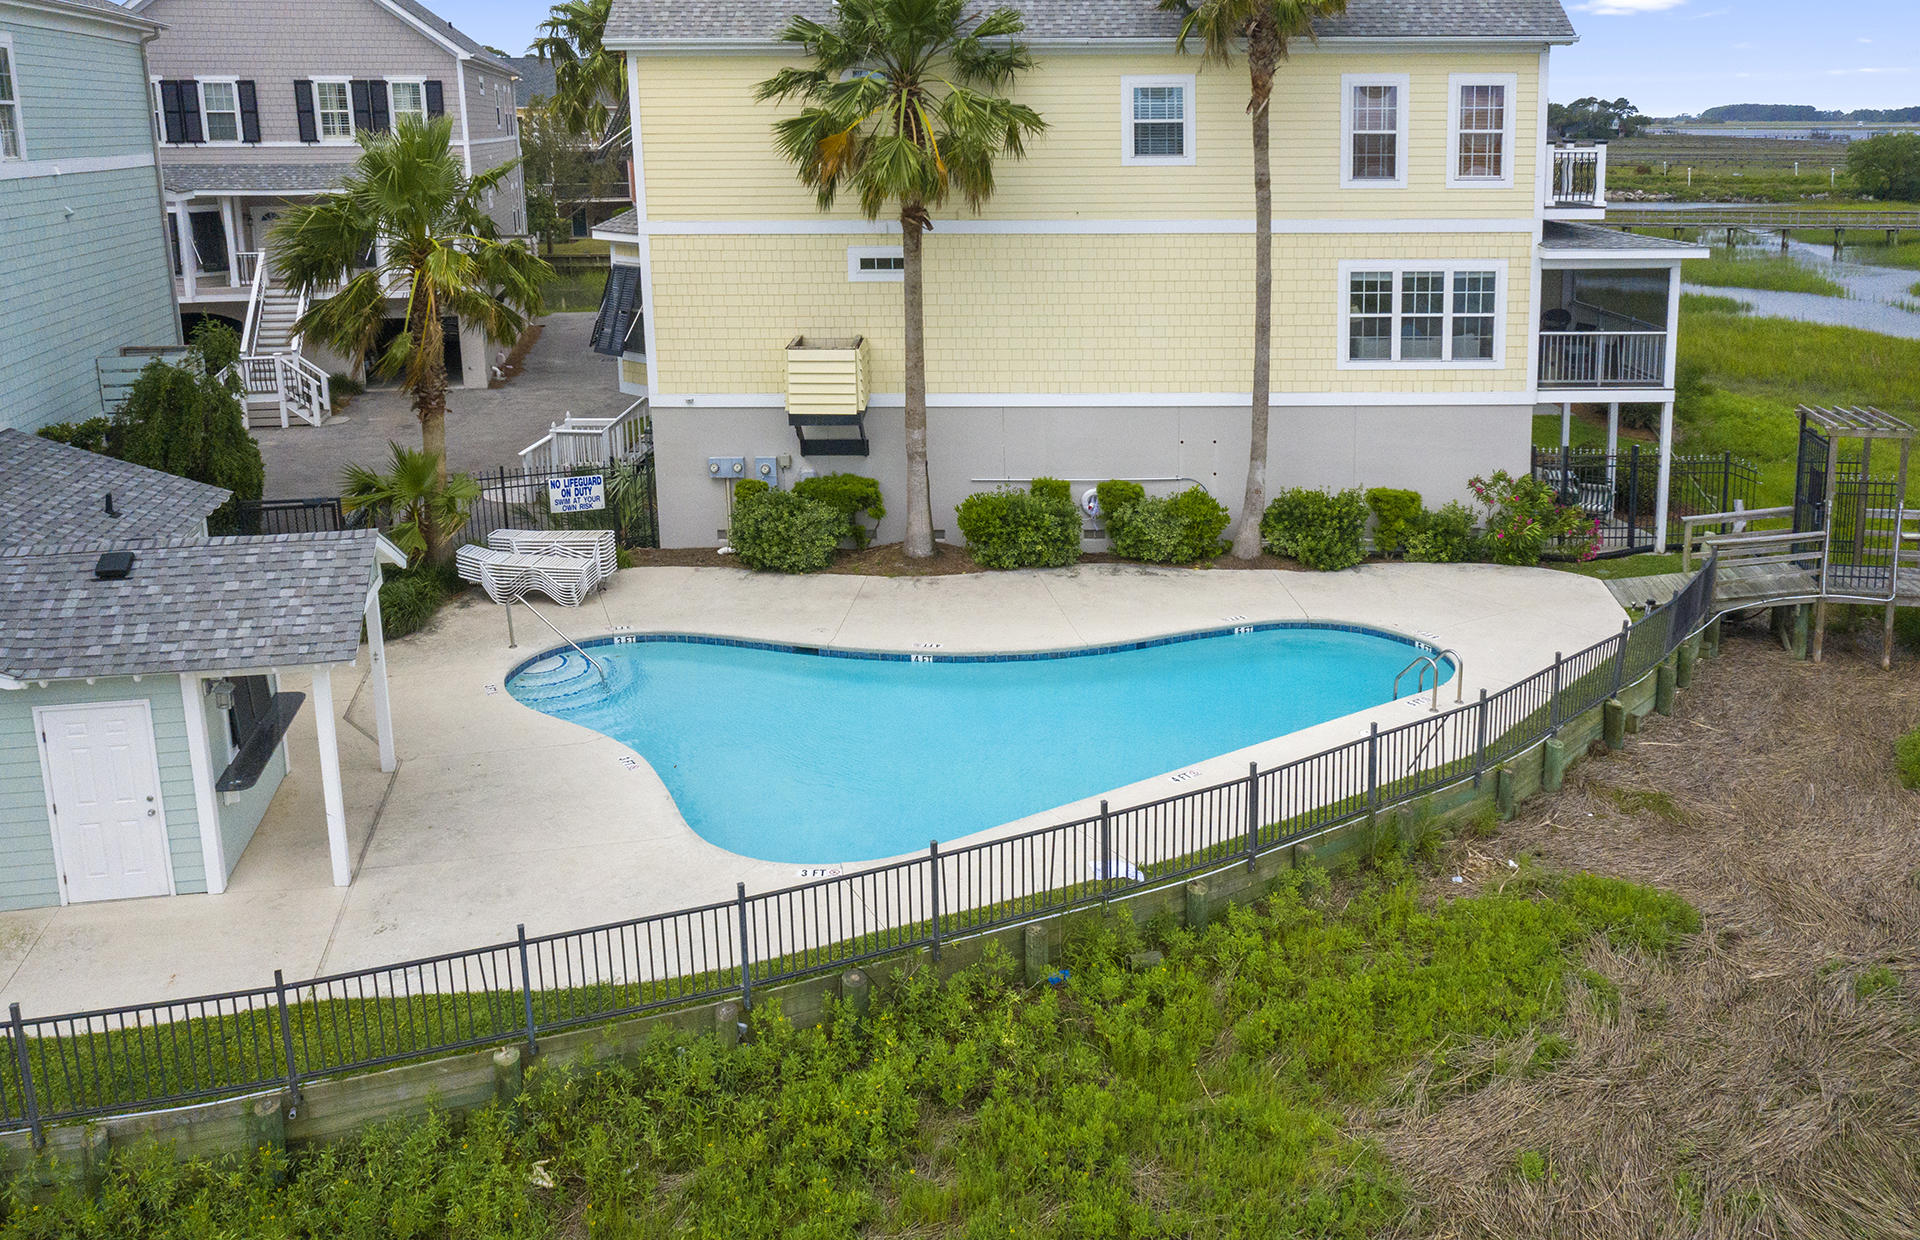 Waters Edge Homes For Sale - 80 2nd, Folly Beach, SC - 43